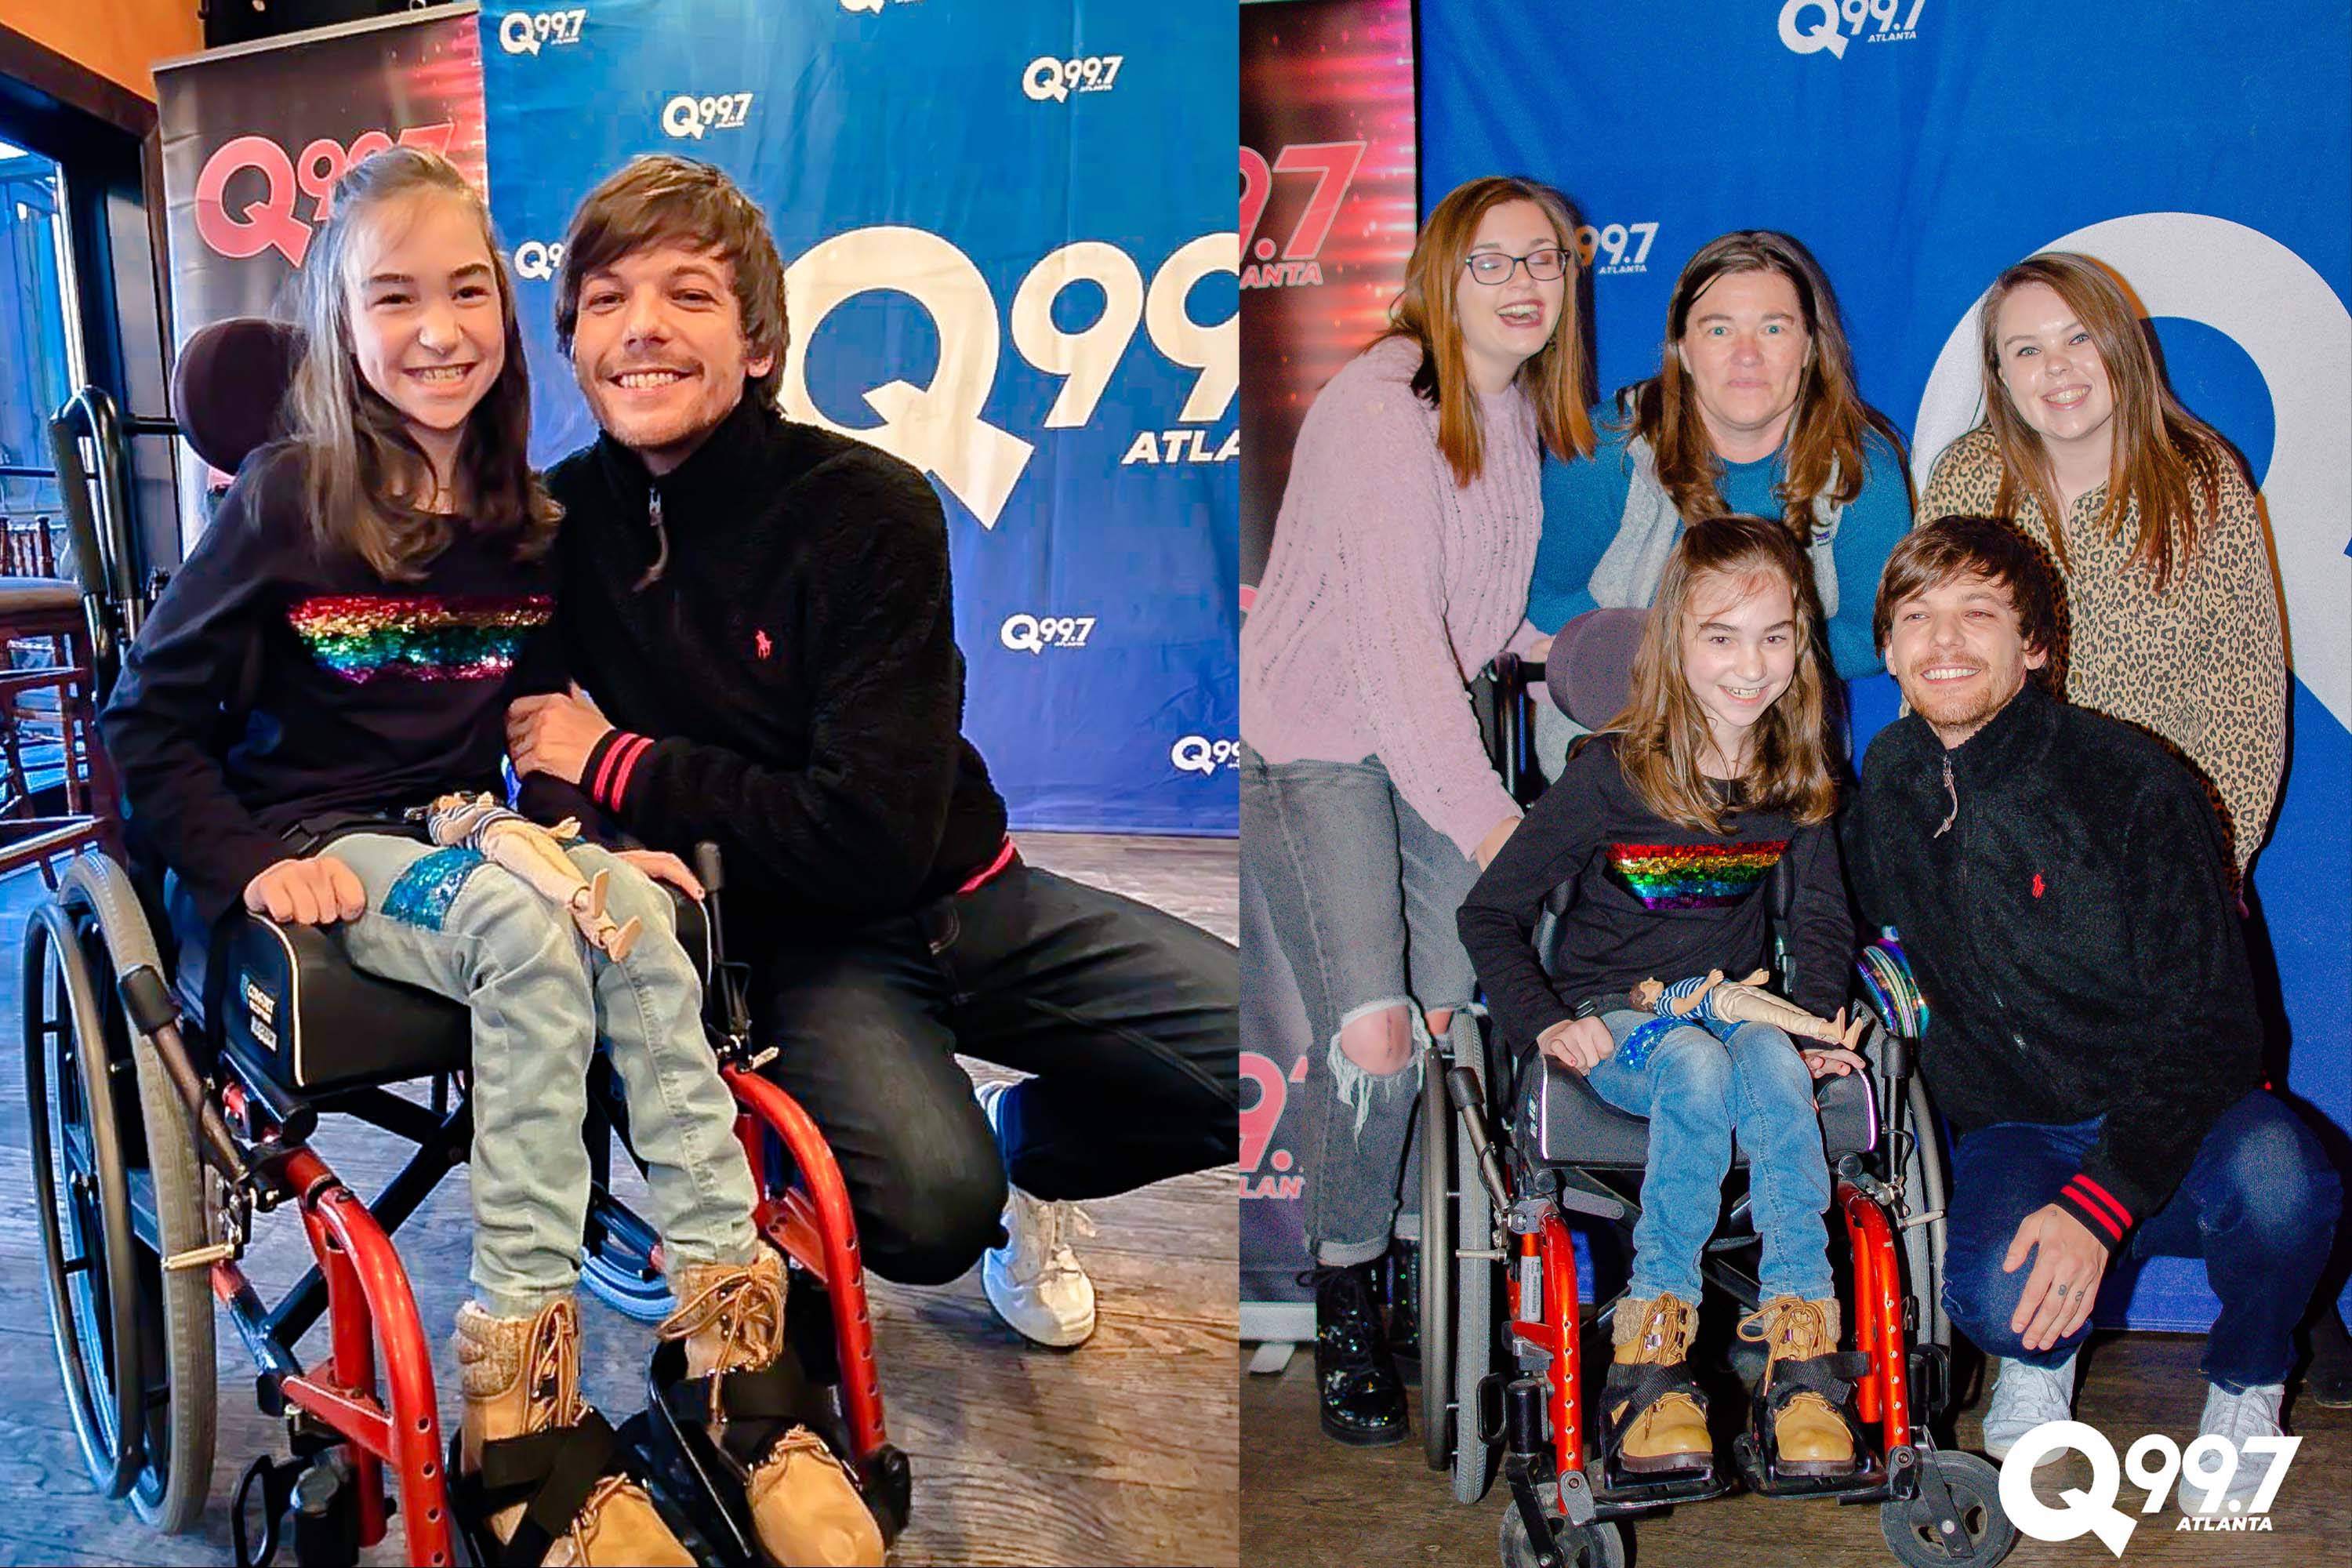 Q99.7 Atlanta Surprises A Young Fan With Her Dream, Meeting Louis Tomlinson | Q-Daily